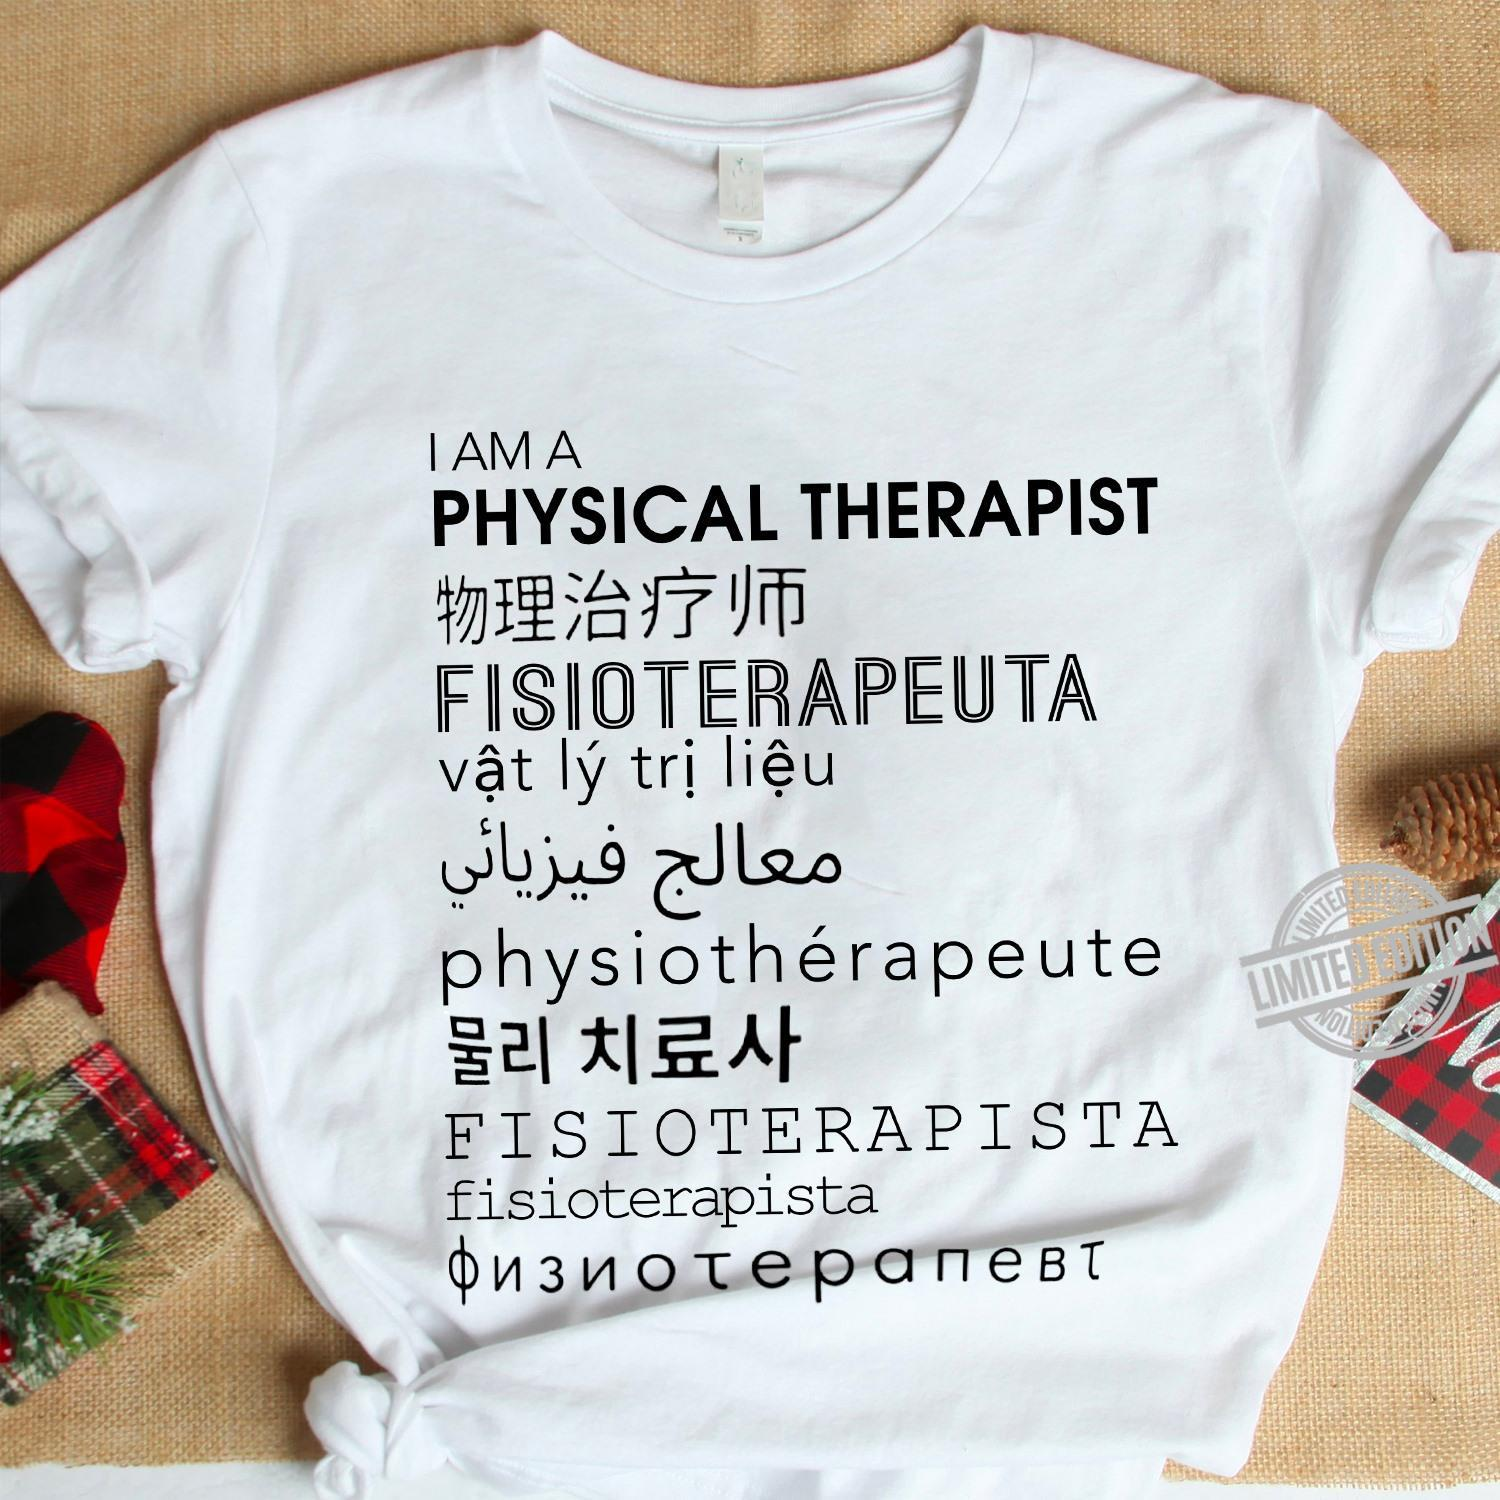 I Am A Physical Therapist Fisioterapeuta Shirt